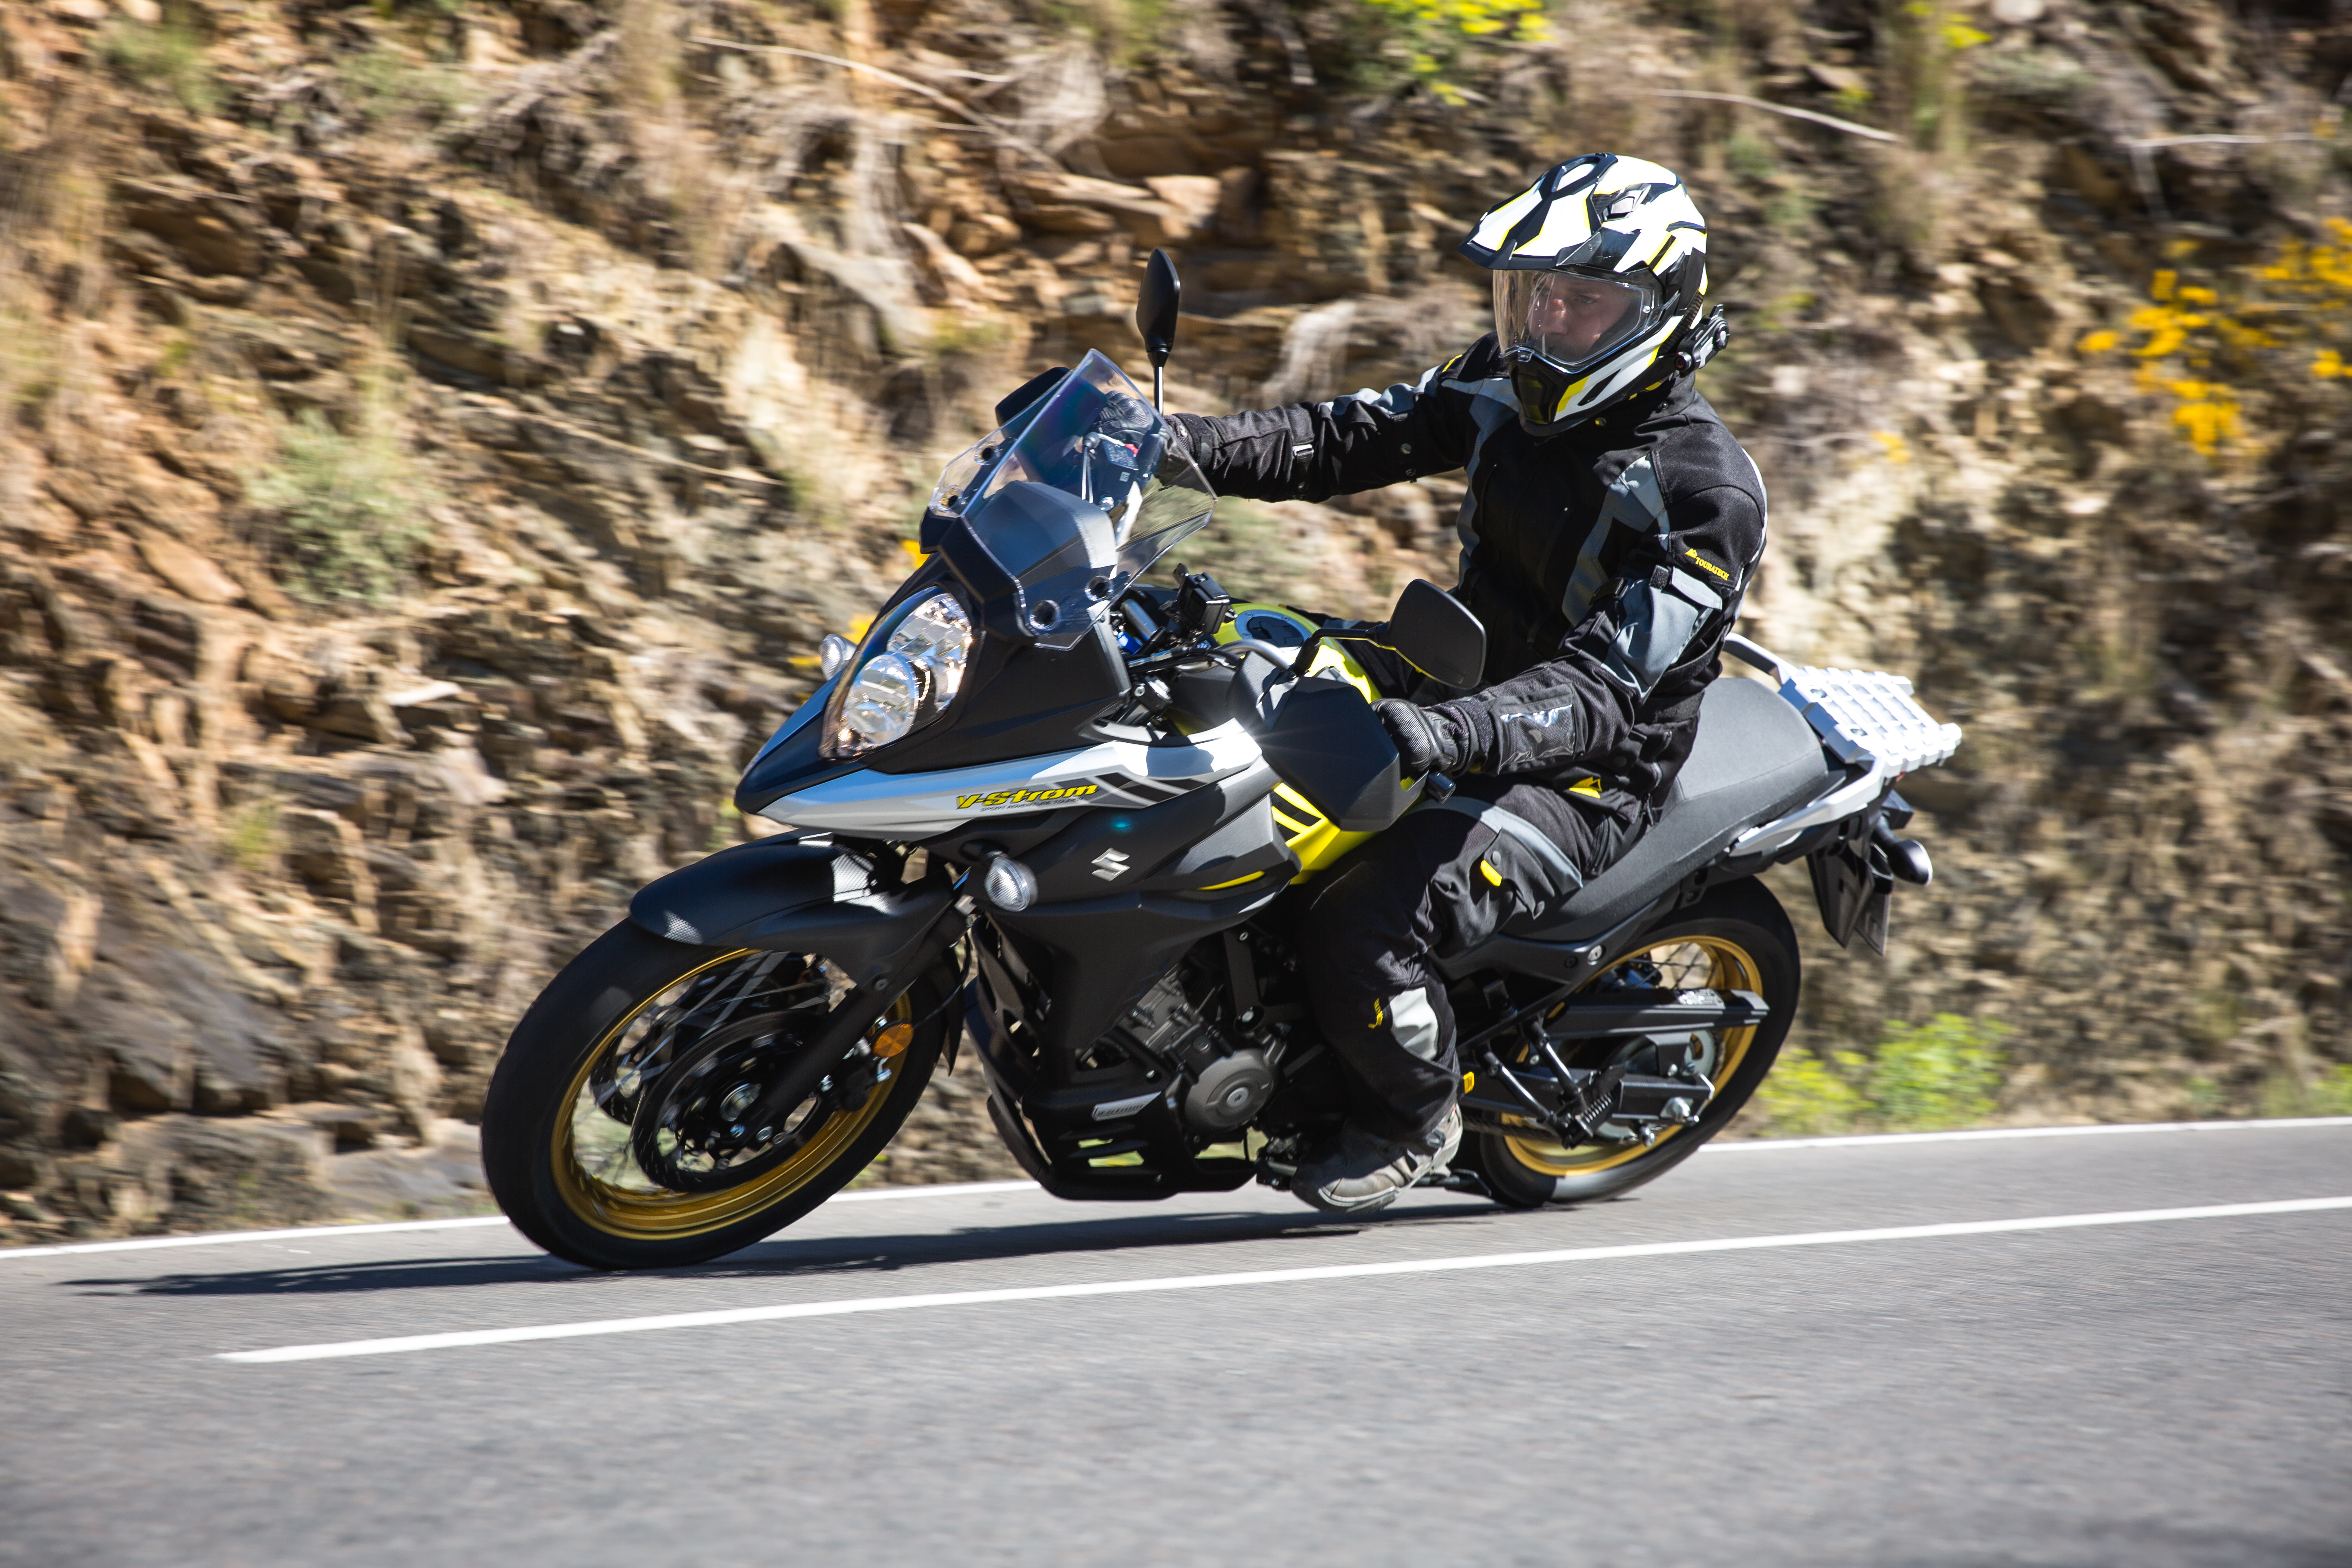 Buy a V-Strom 650 for as little as £85 a month